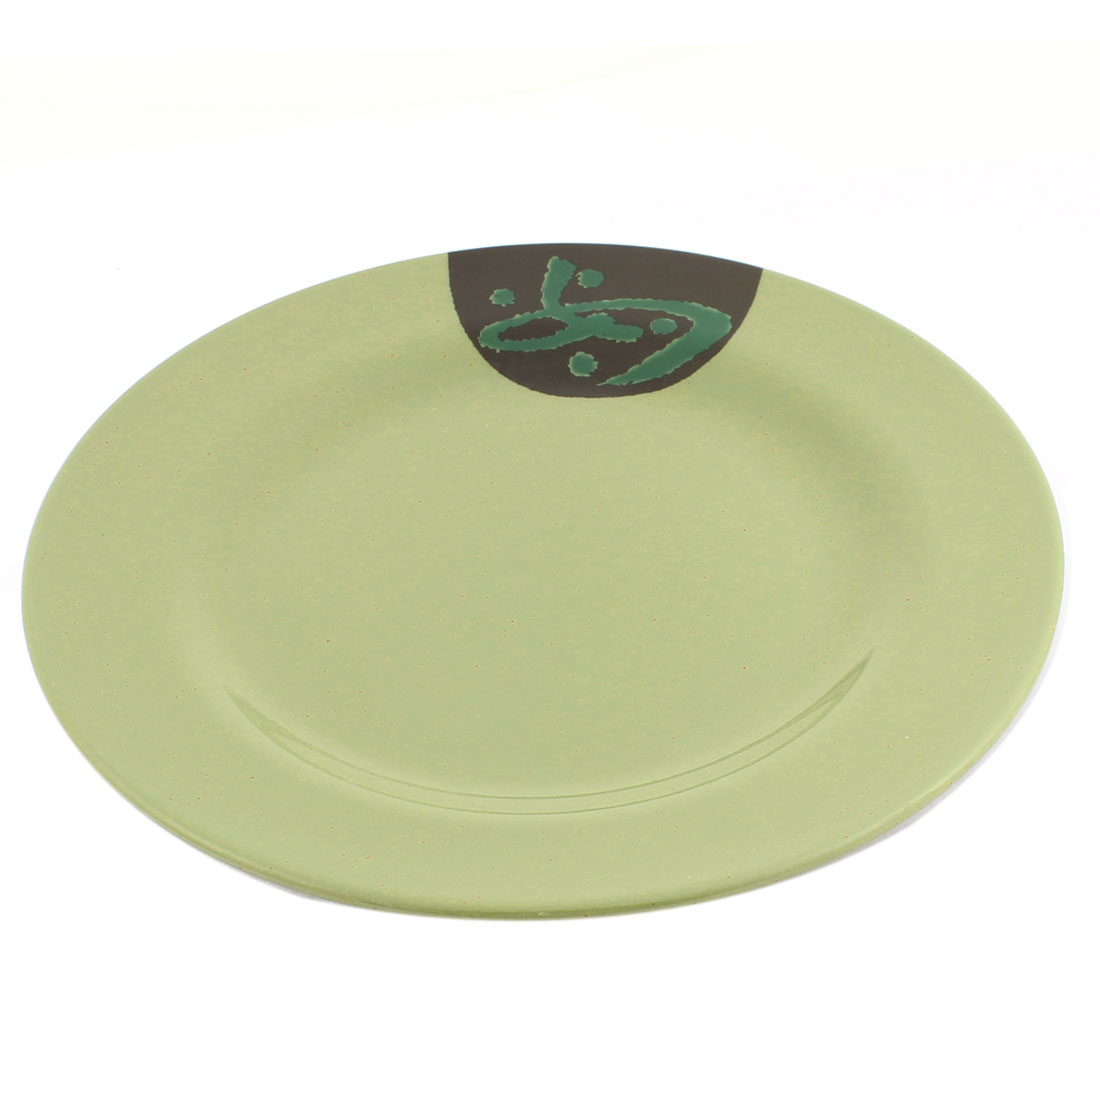 Plastic Round Shape Tableware Dinner Plate 10 Inch Dia